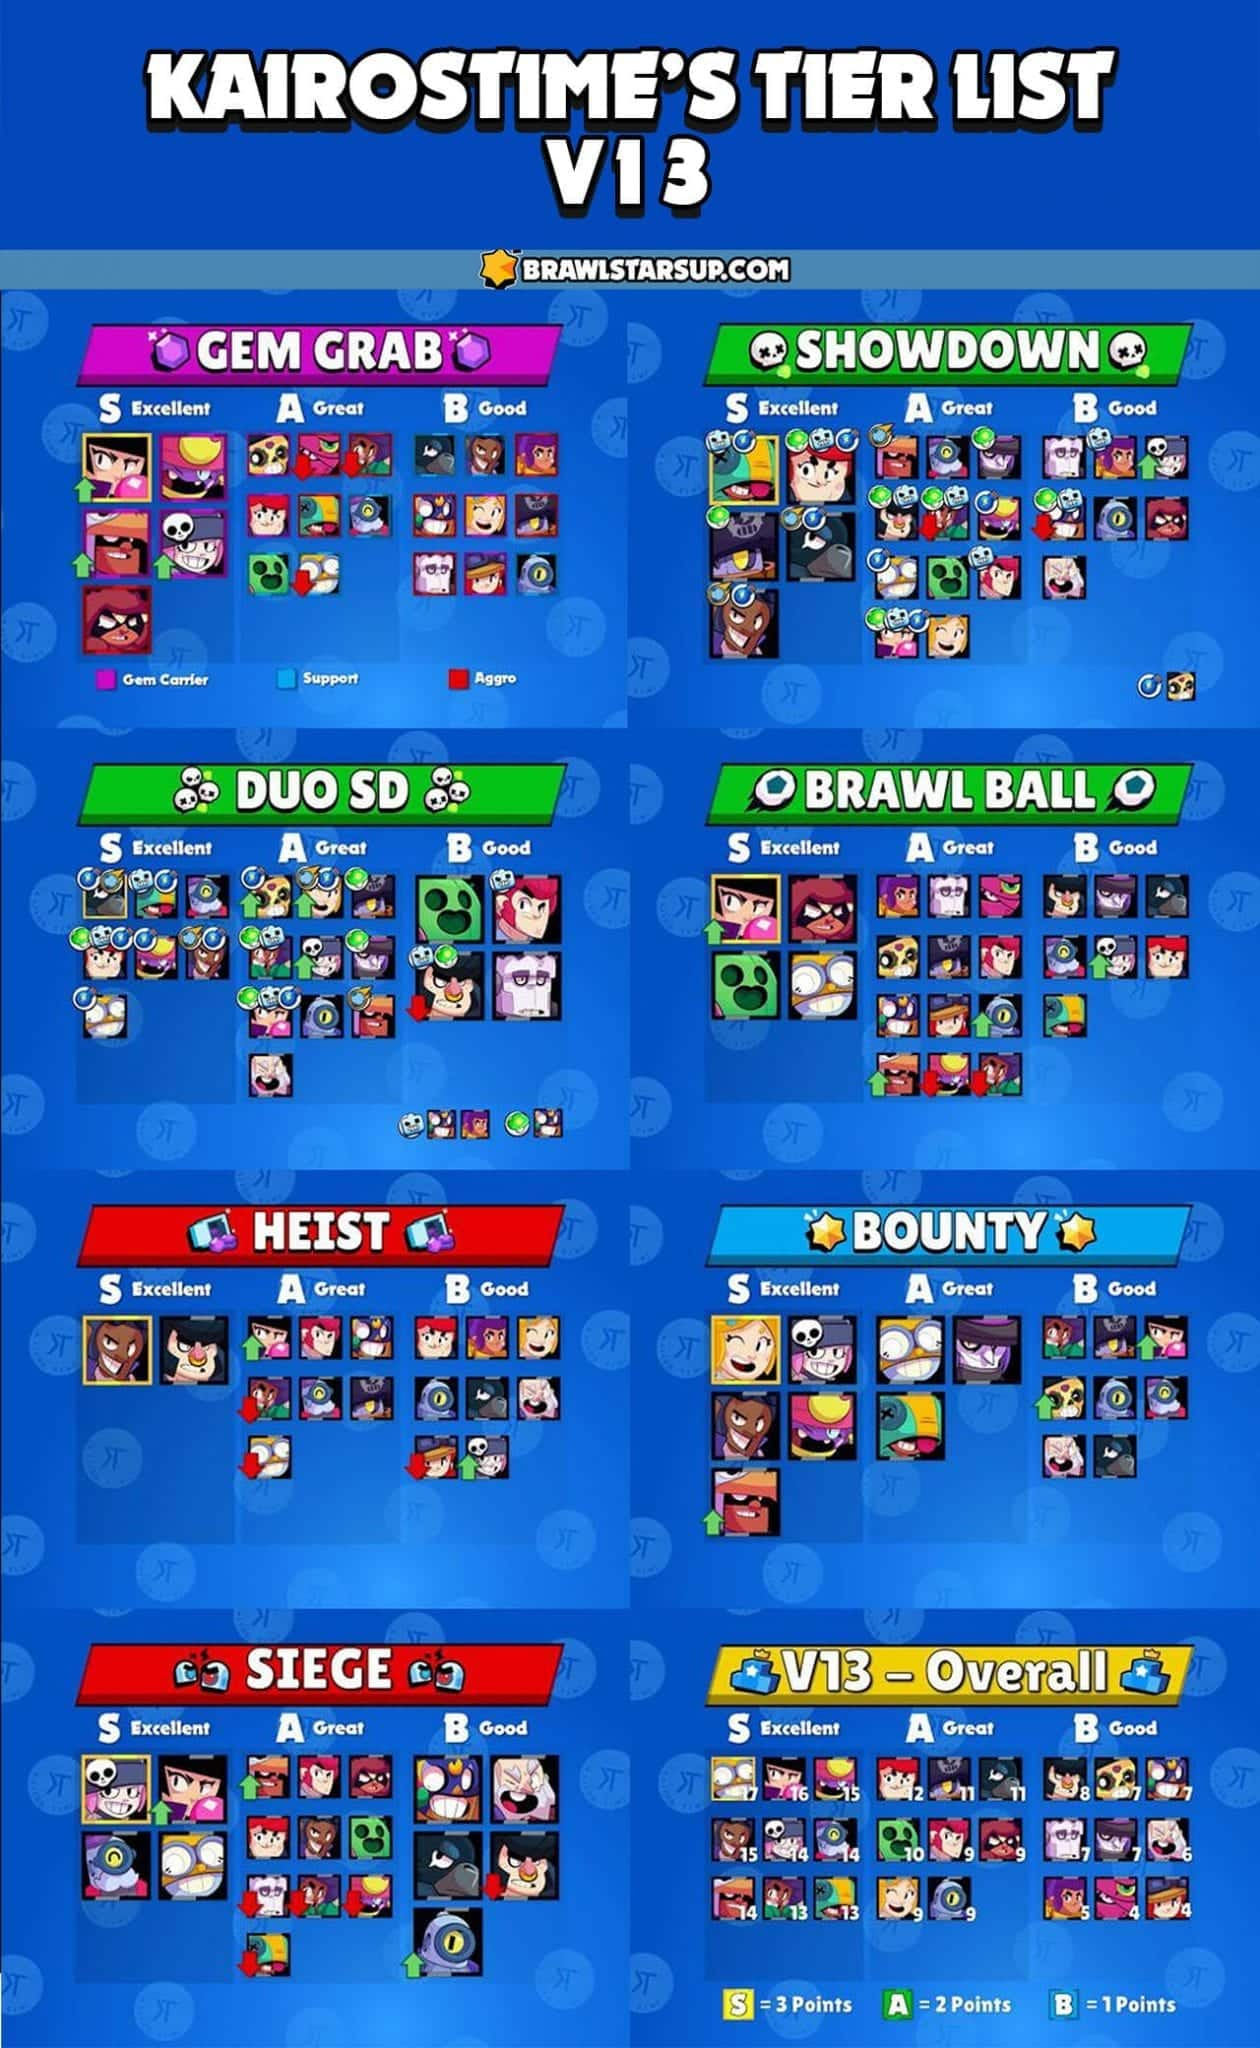 brawl stars tier list v13